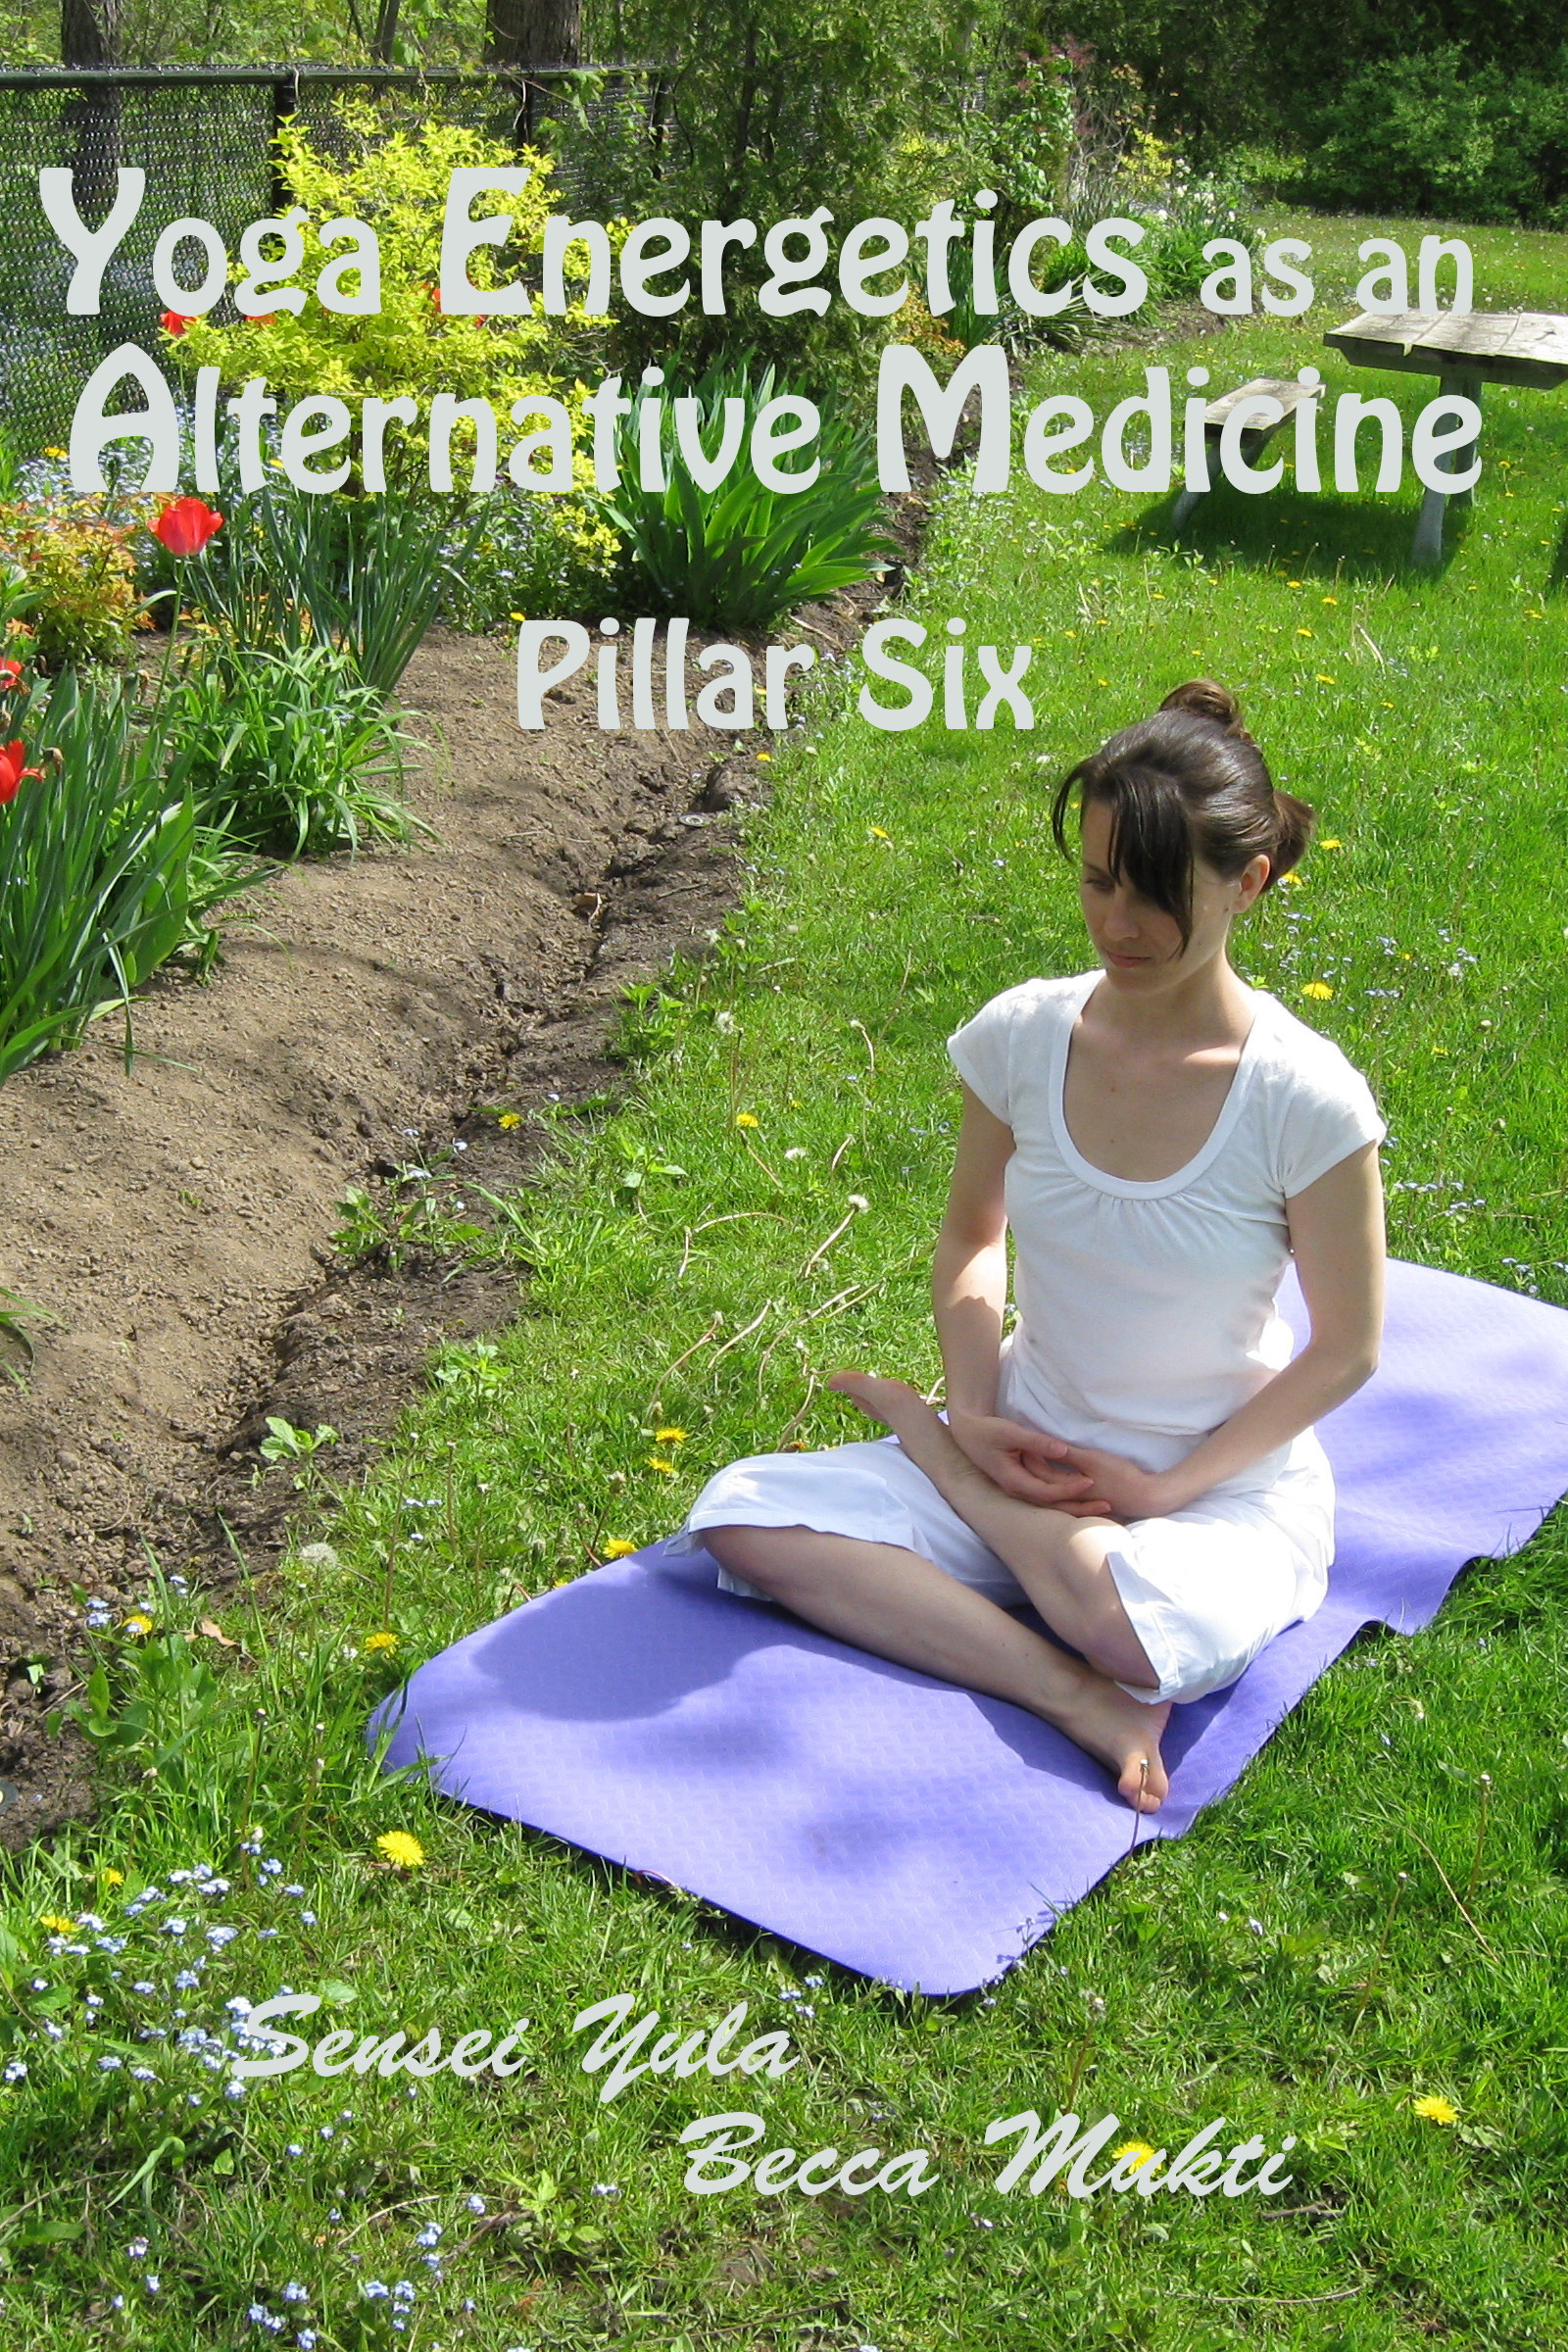 Yoga Energetics as an Alternative Medicine: Pillar Six